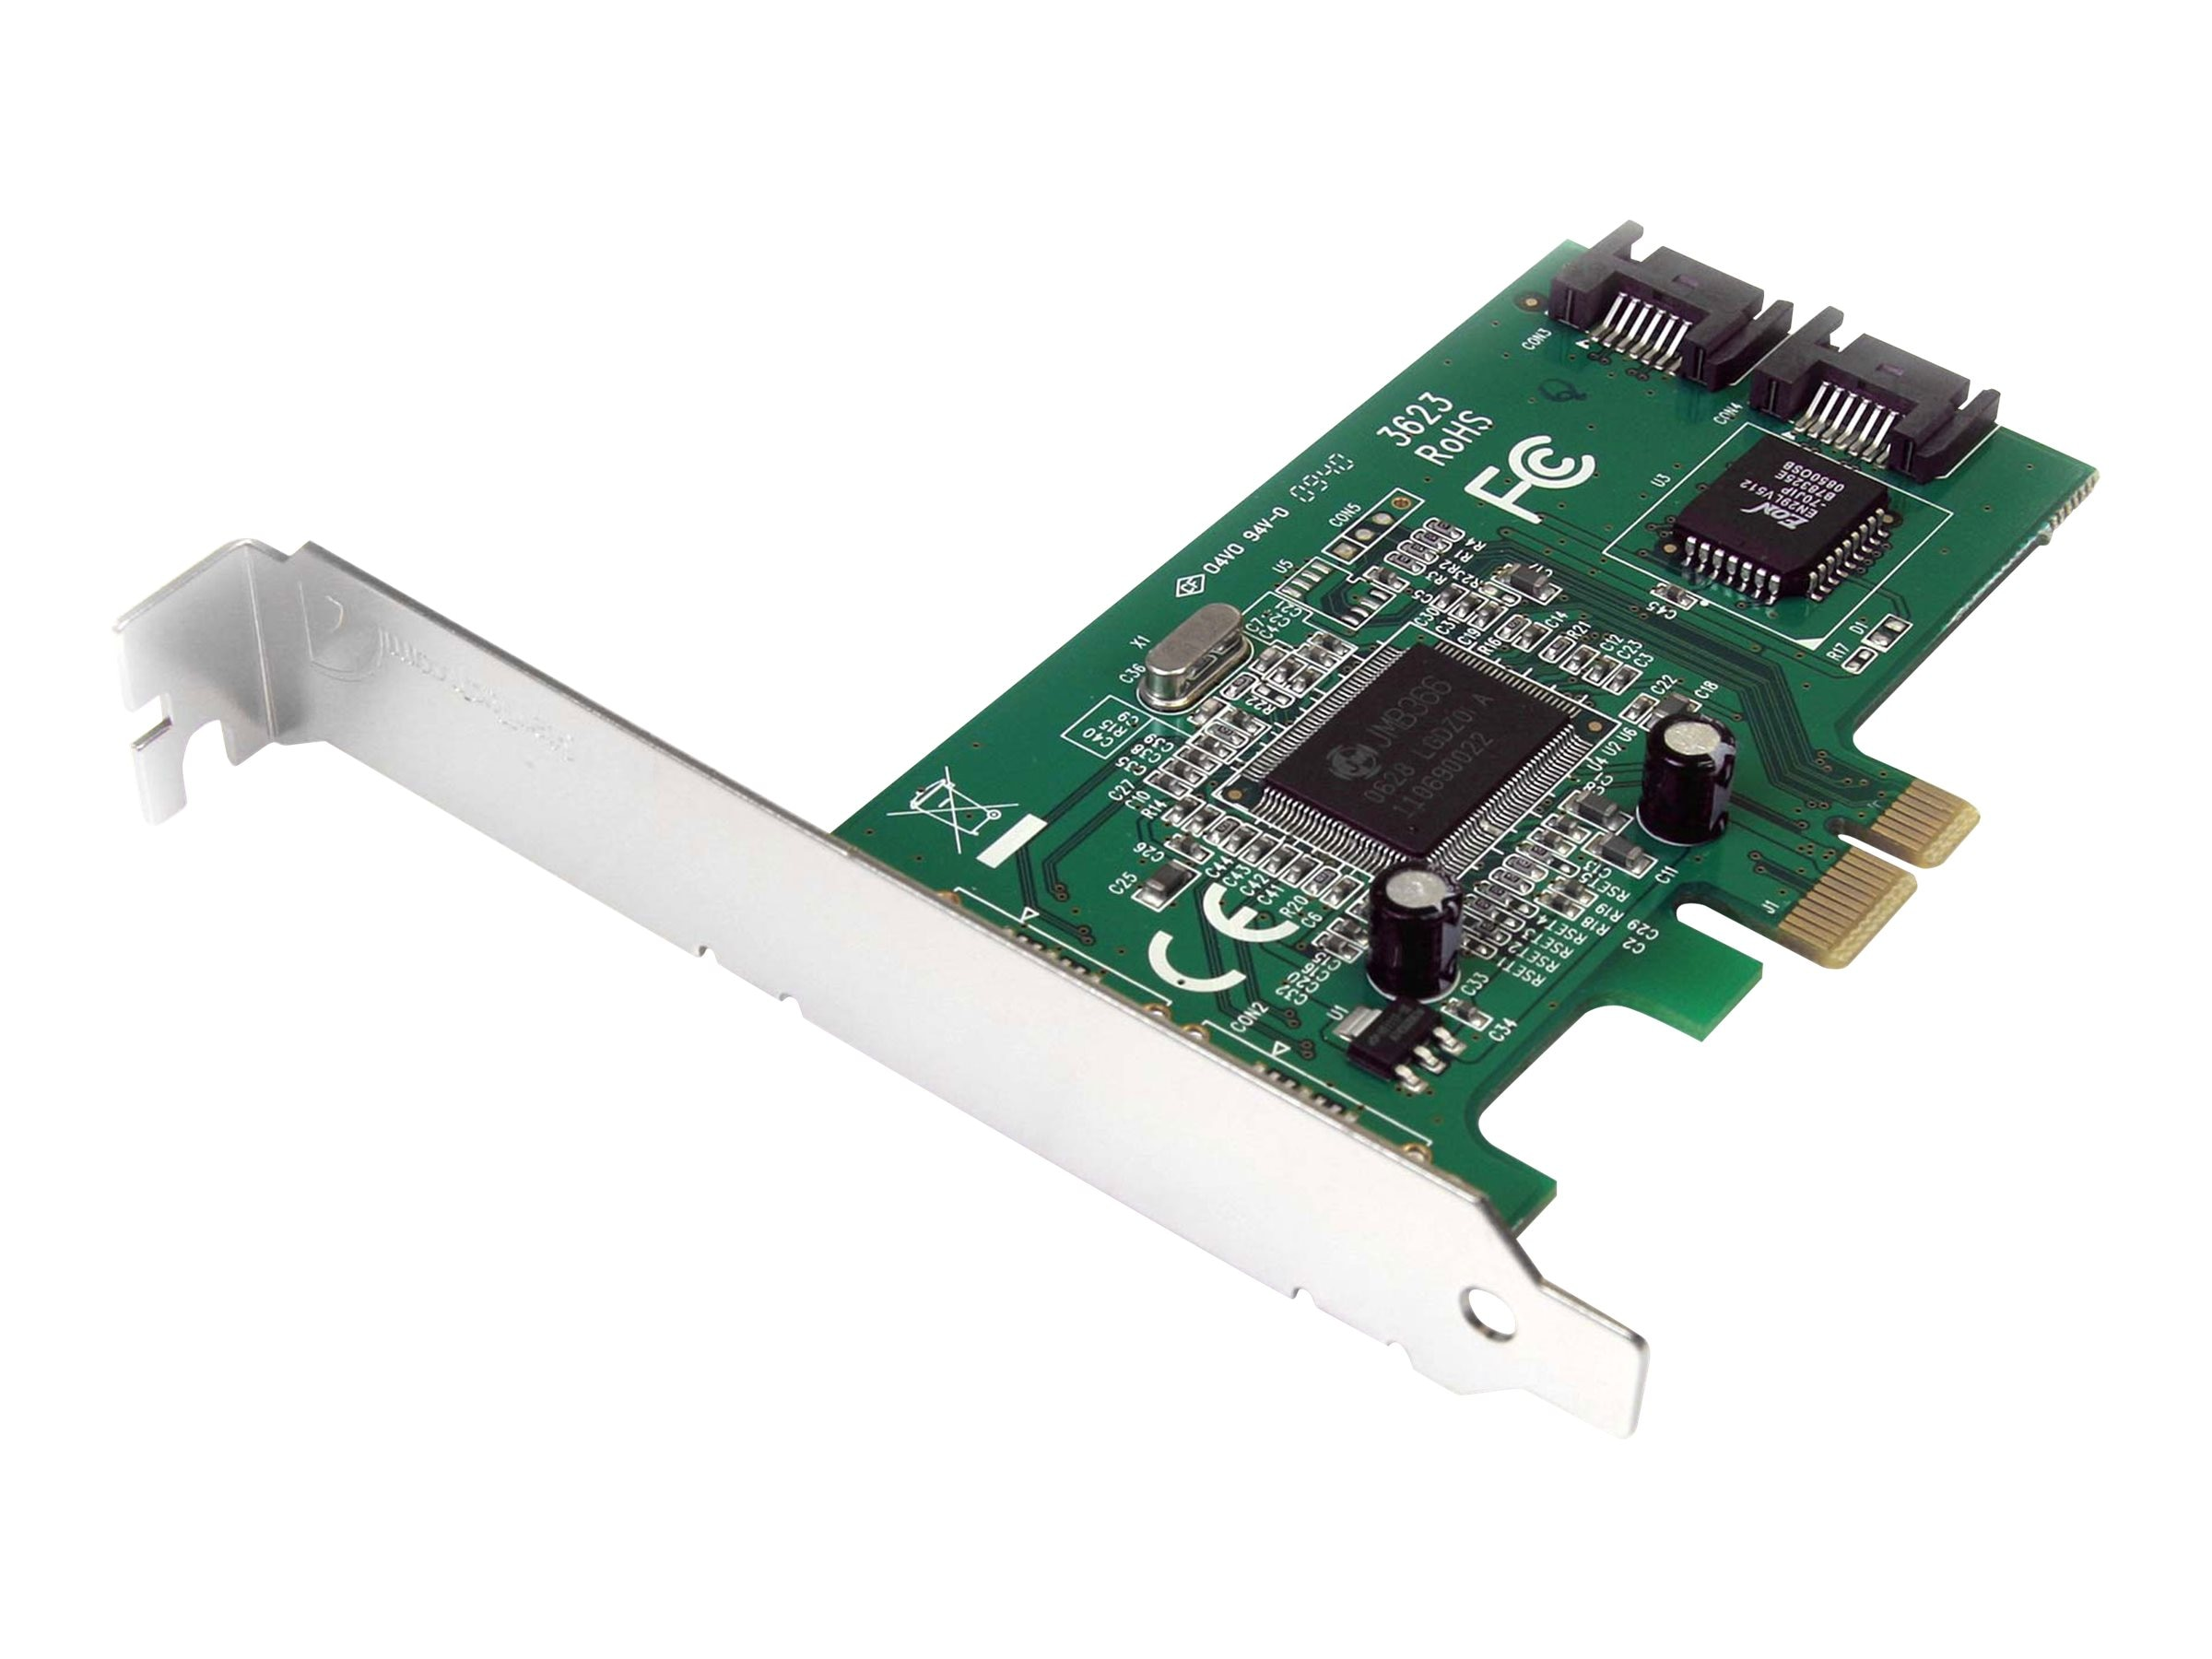 StarTech.com 2 Port PCI Express Internal SATA II Controller Card, PEXSATA22I